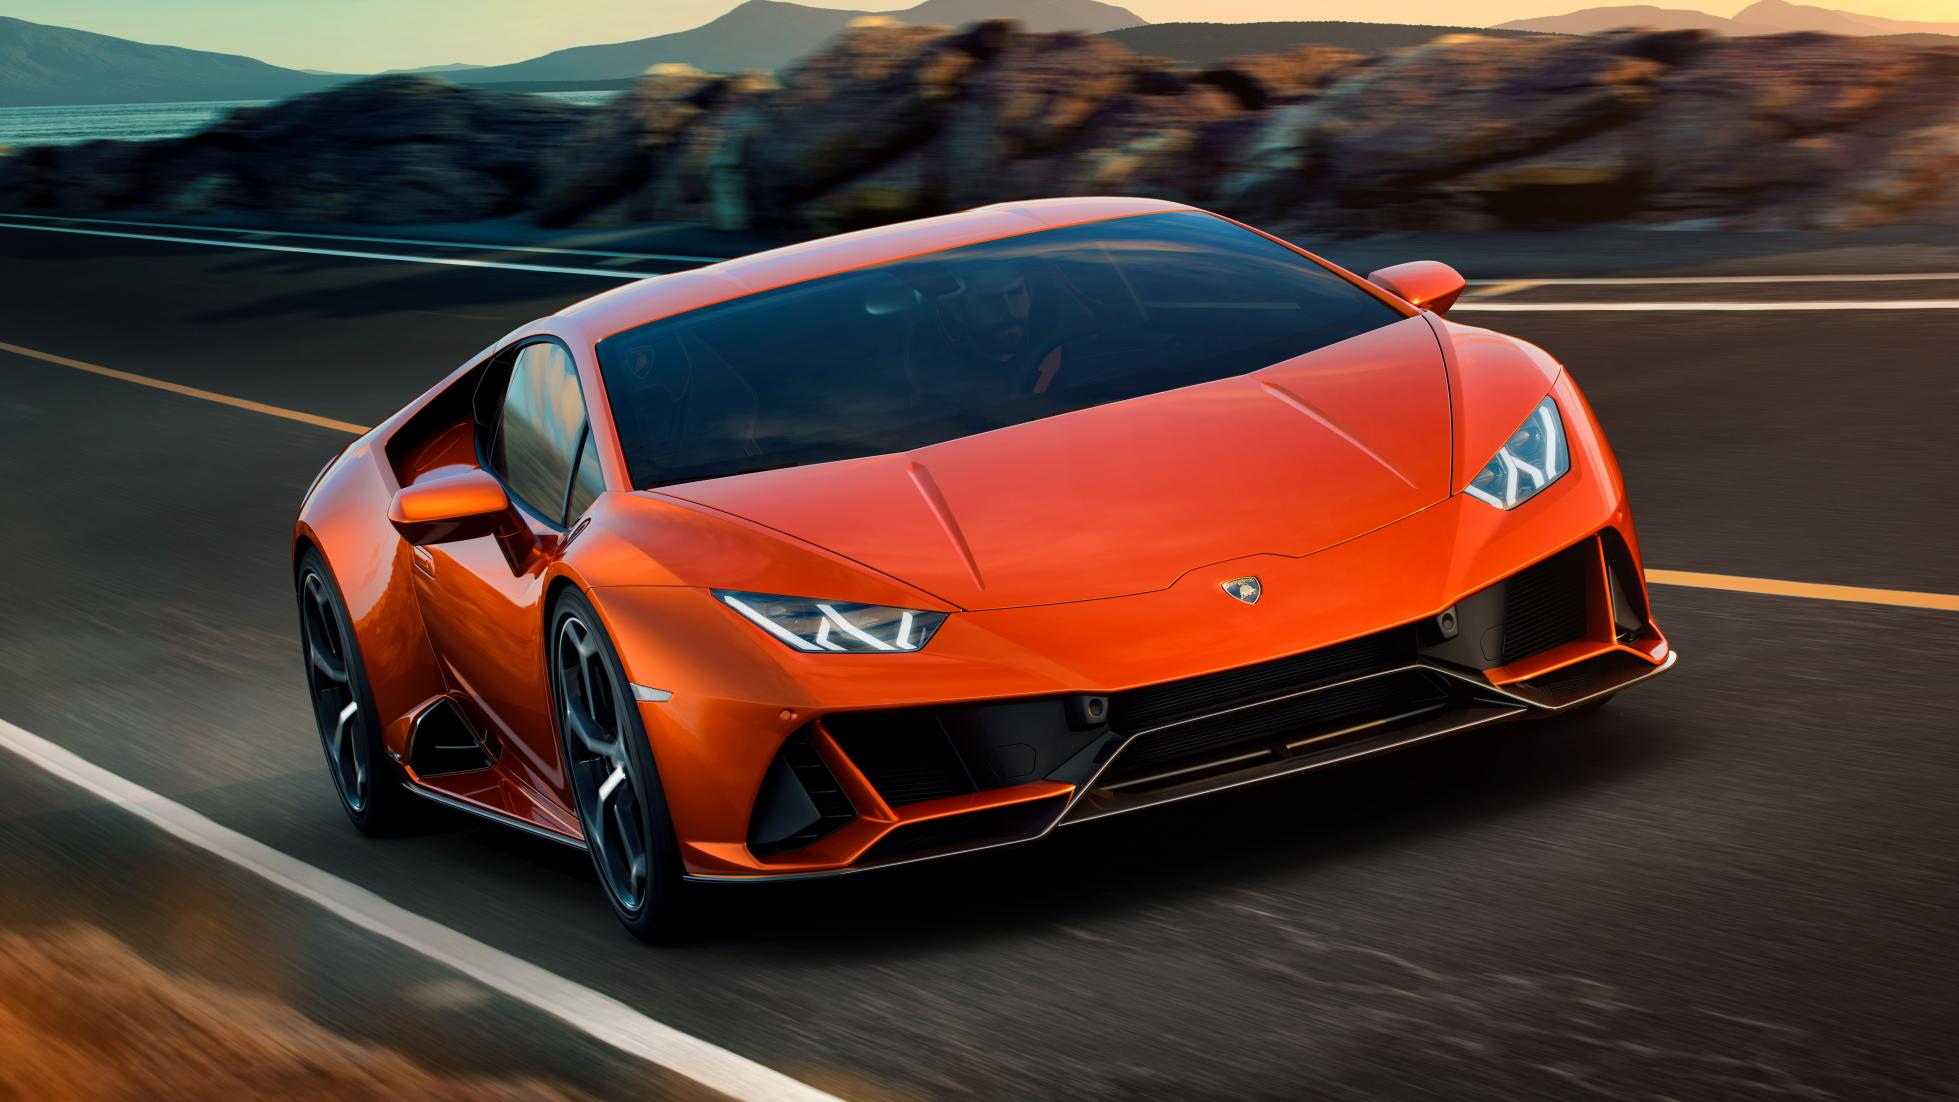 The 2020 Lamborghini Huracán EVO is faster, more aerodynamic and a whole lot smarter